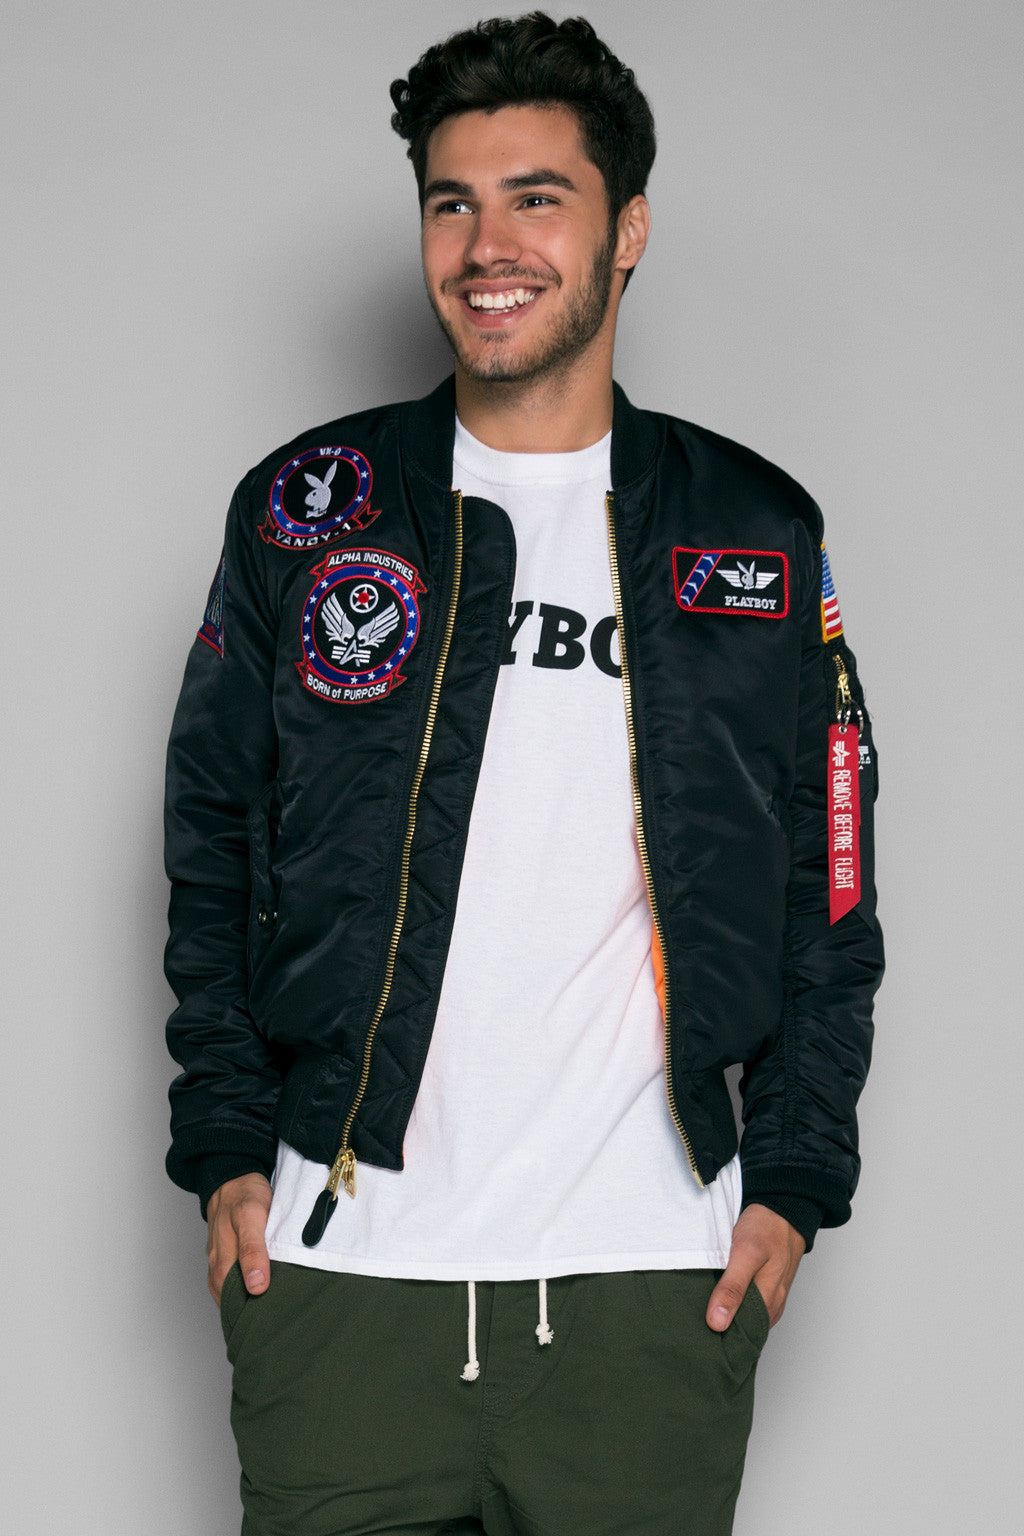 Vandy-1 Alpha Bomber Jacket | Playboy Jackets | Playboy Shop